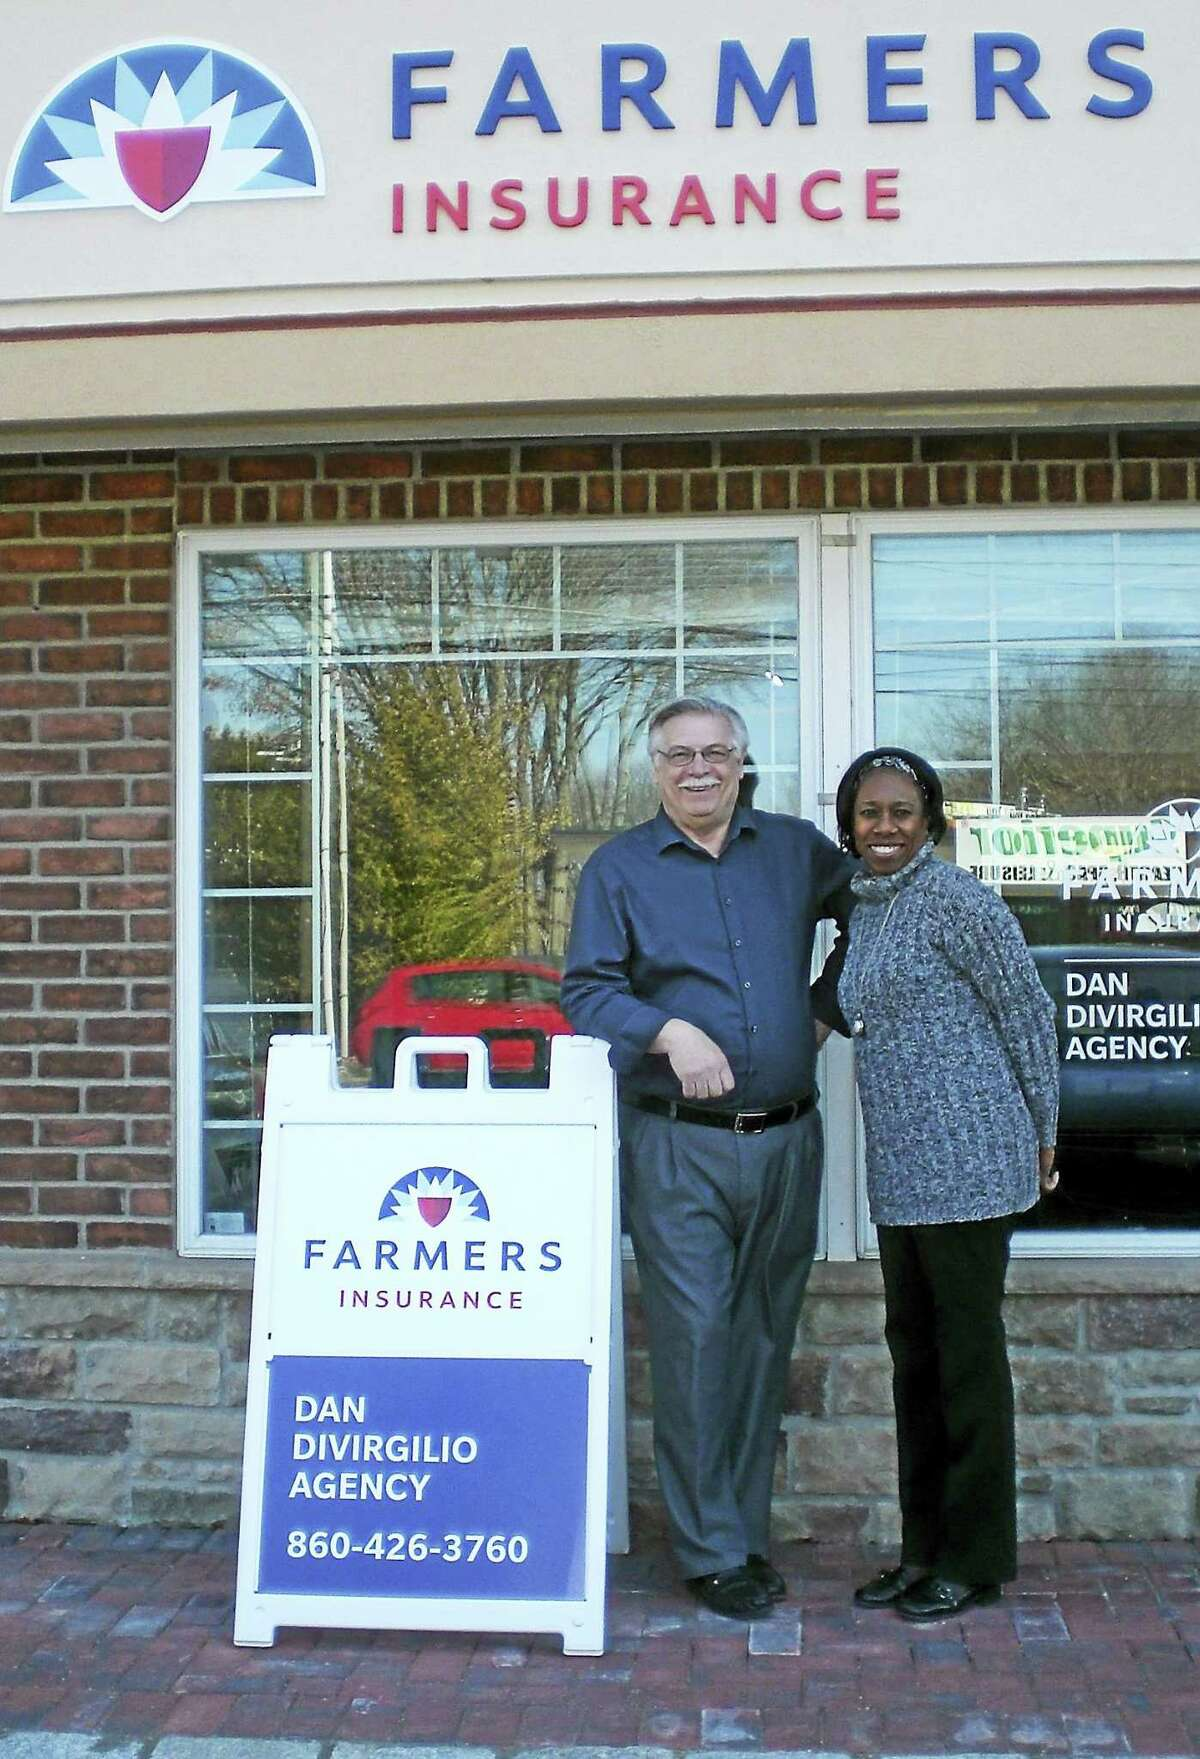 Dan DiVirgilio has opened the new Farmers Insurance Dan DiVirgilio Agency LLC at 1460 Meriden-Waterbury Turnpike in Southington. Working with DiVirgilio is licensed producer Janice Mitchell-Smith. The agency offers auto, homeowners, life, business insurances plus retirement funding and special discounts to veterans, U.S. military personnel, fire and police personnel, teachers, medical professionals, and special packages for business owners.